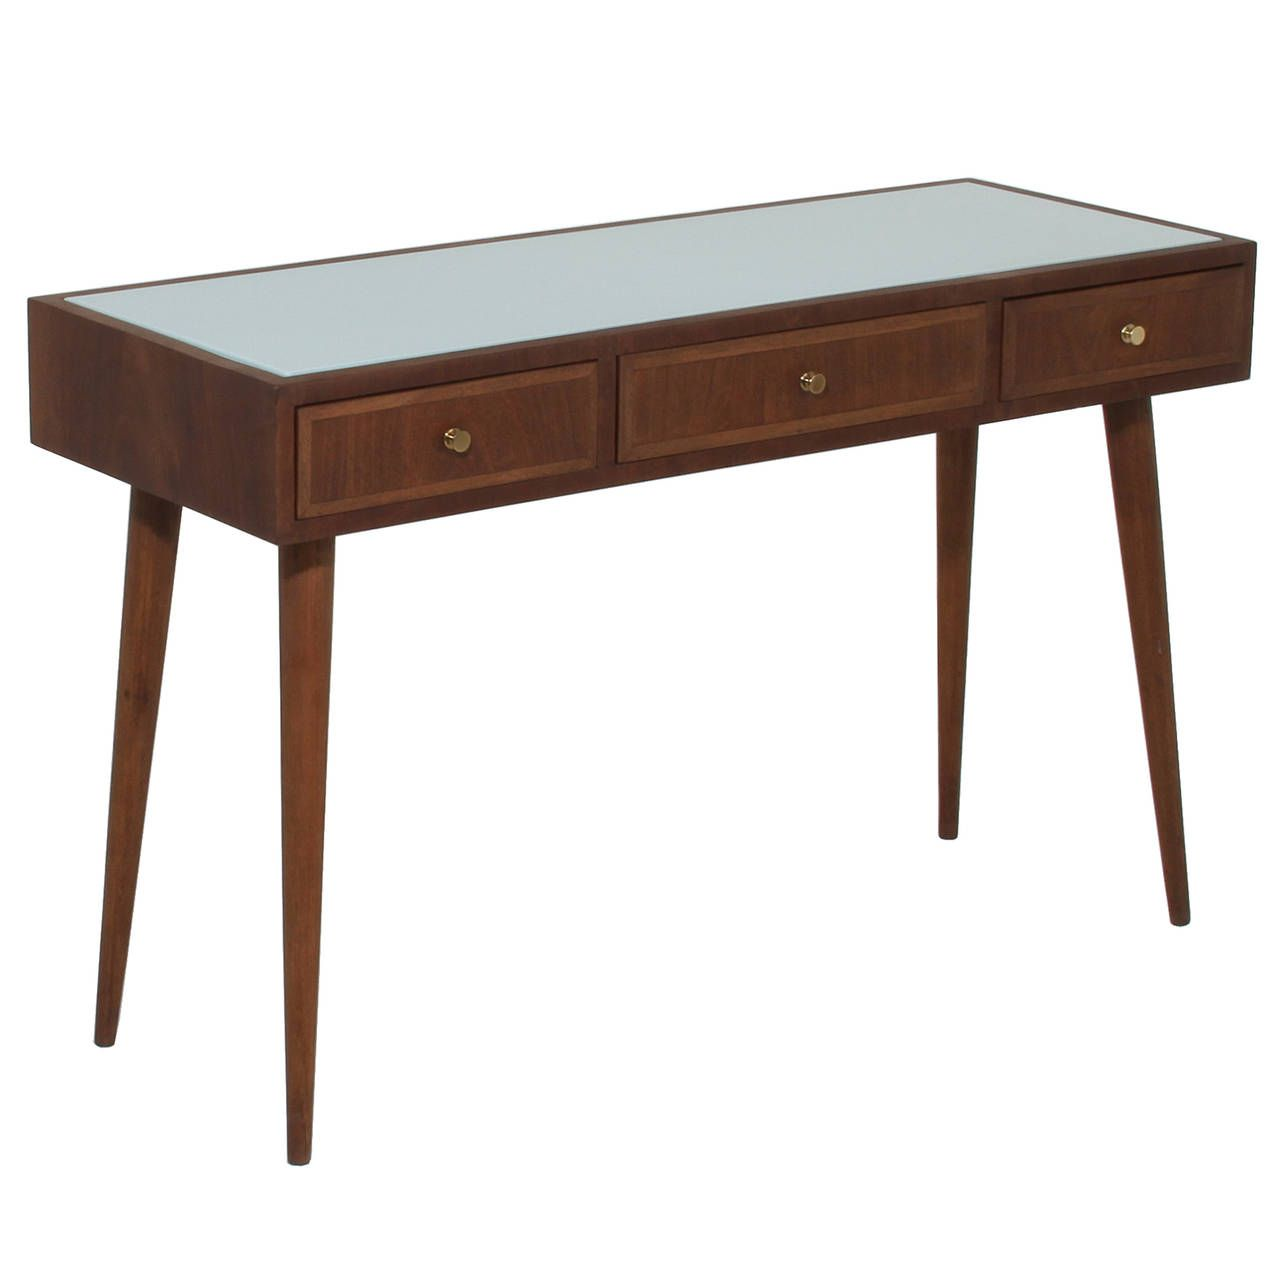 Brazilian Freijo Wood Desk With White Glass Top By Scapinelli